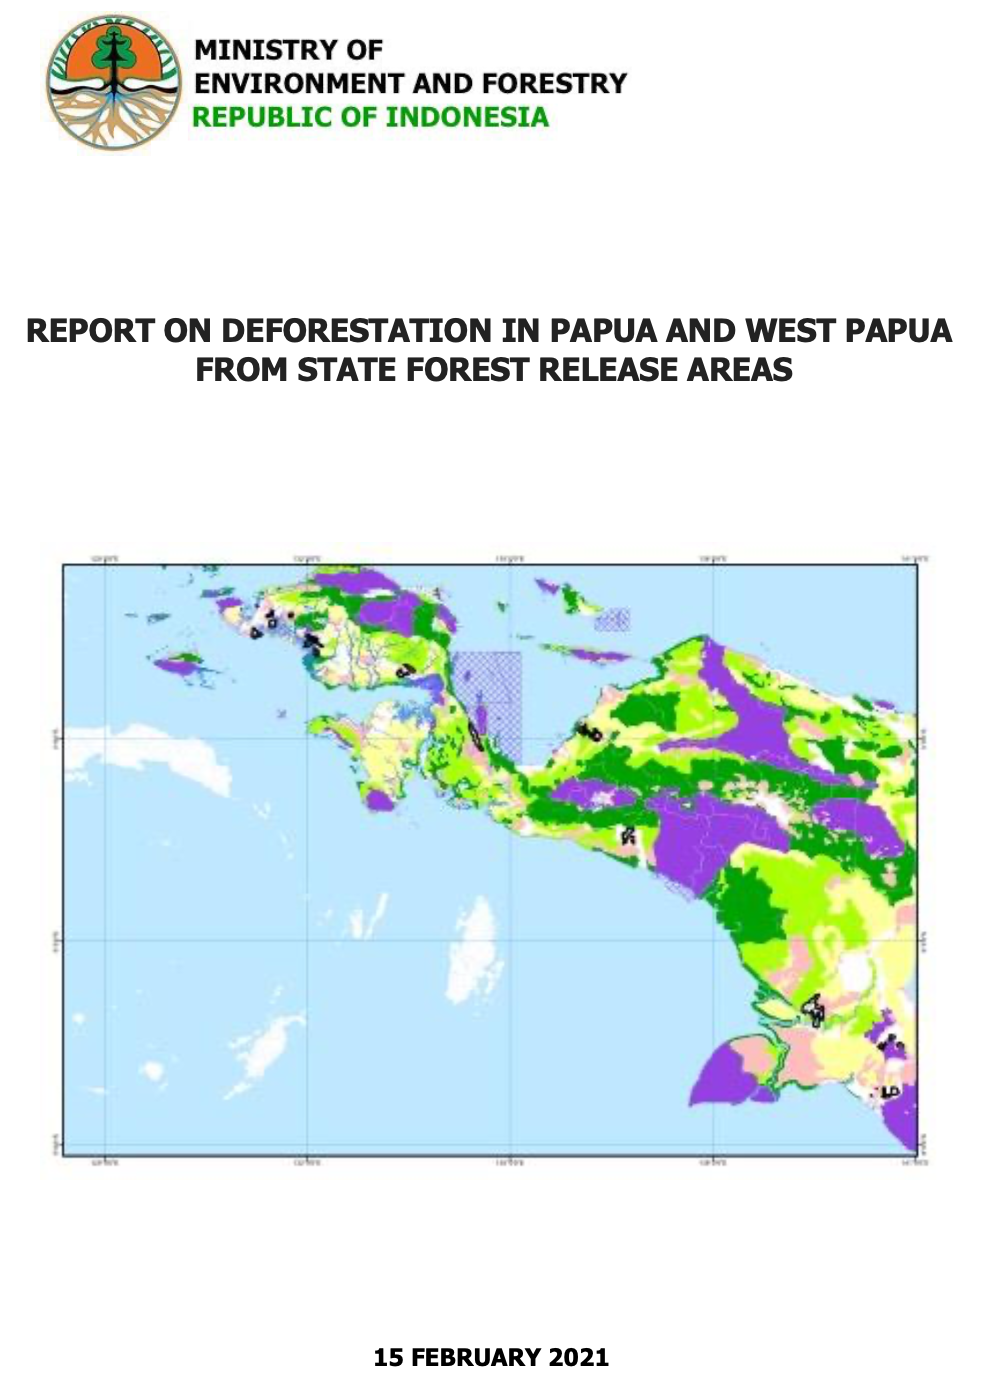 Report on Deforestation in Papua and West Papua From State Forest Release Areas